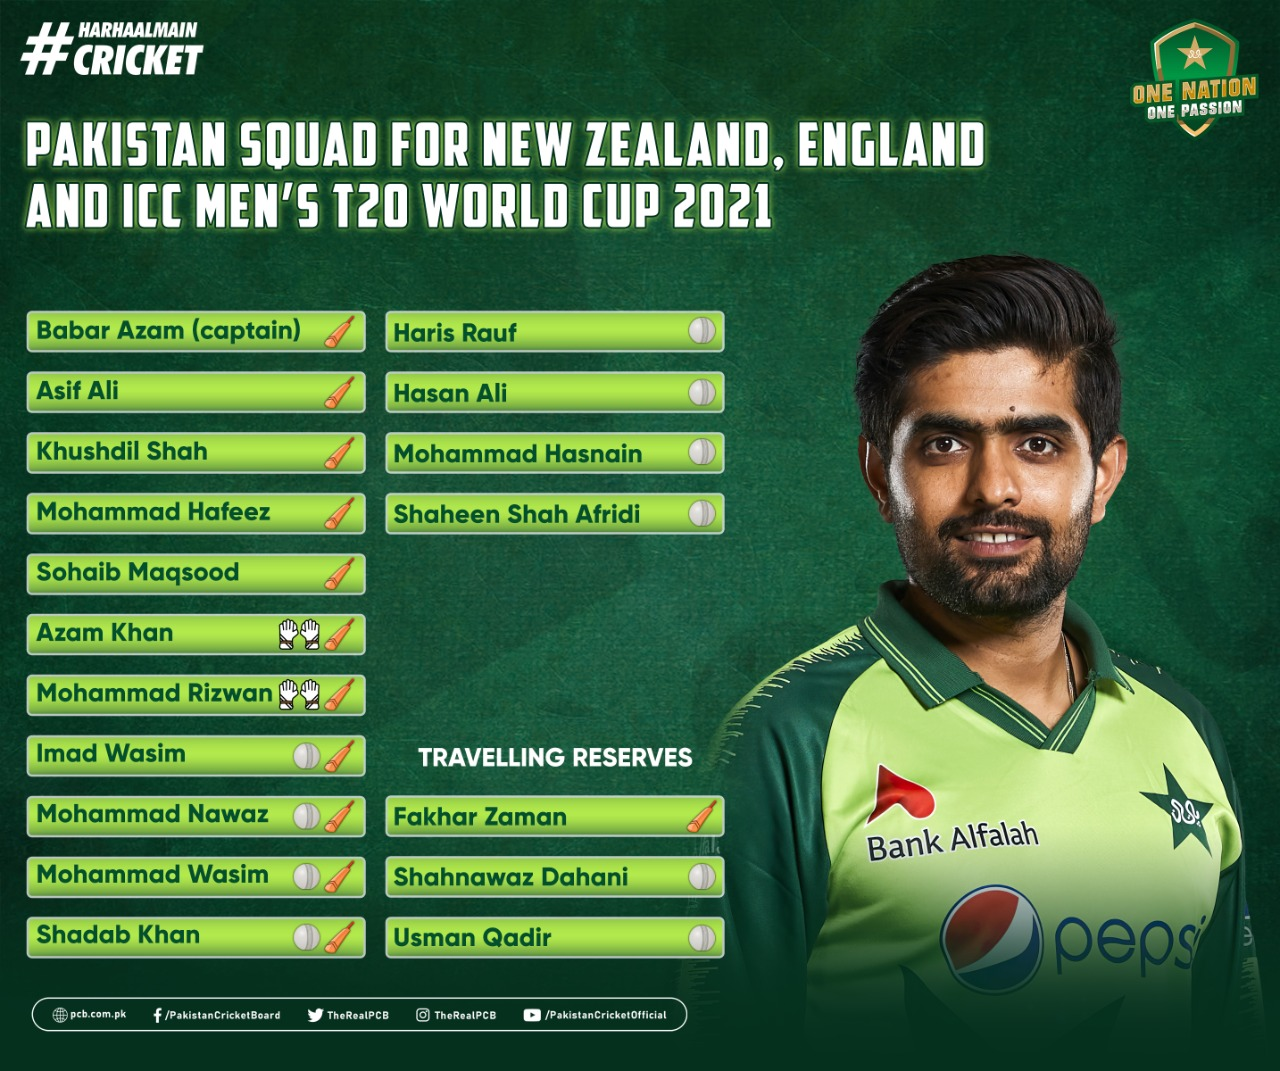 Pakistan To Make Changes on Squad Changes Soon | T20 World Cup 2021-22